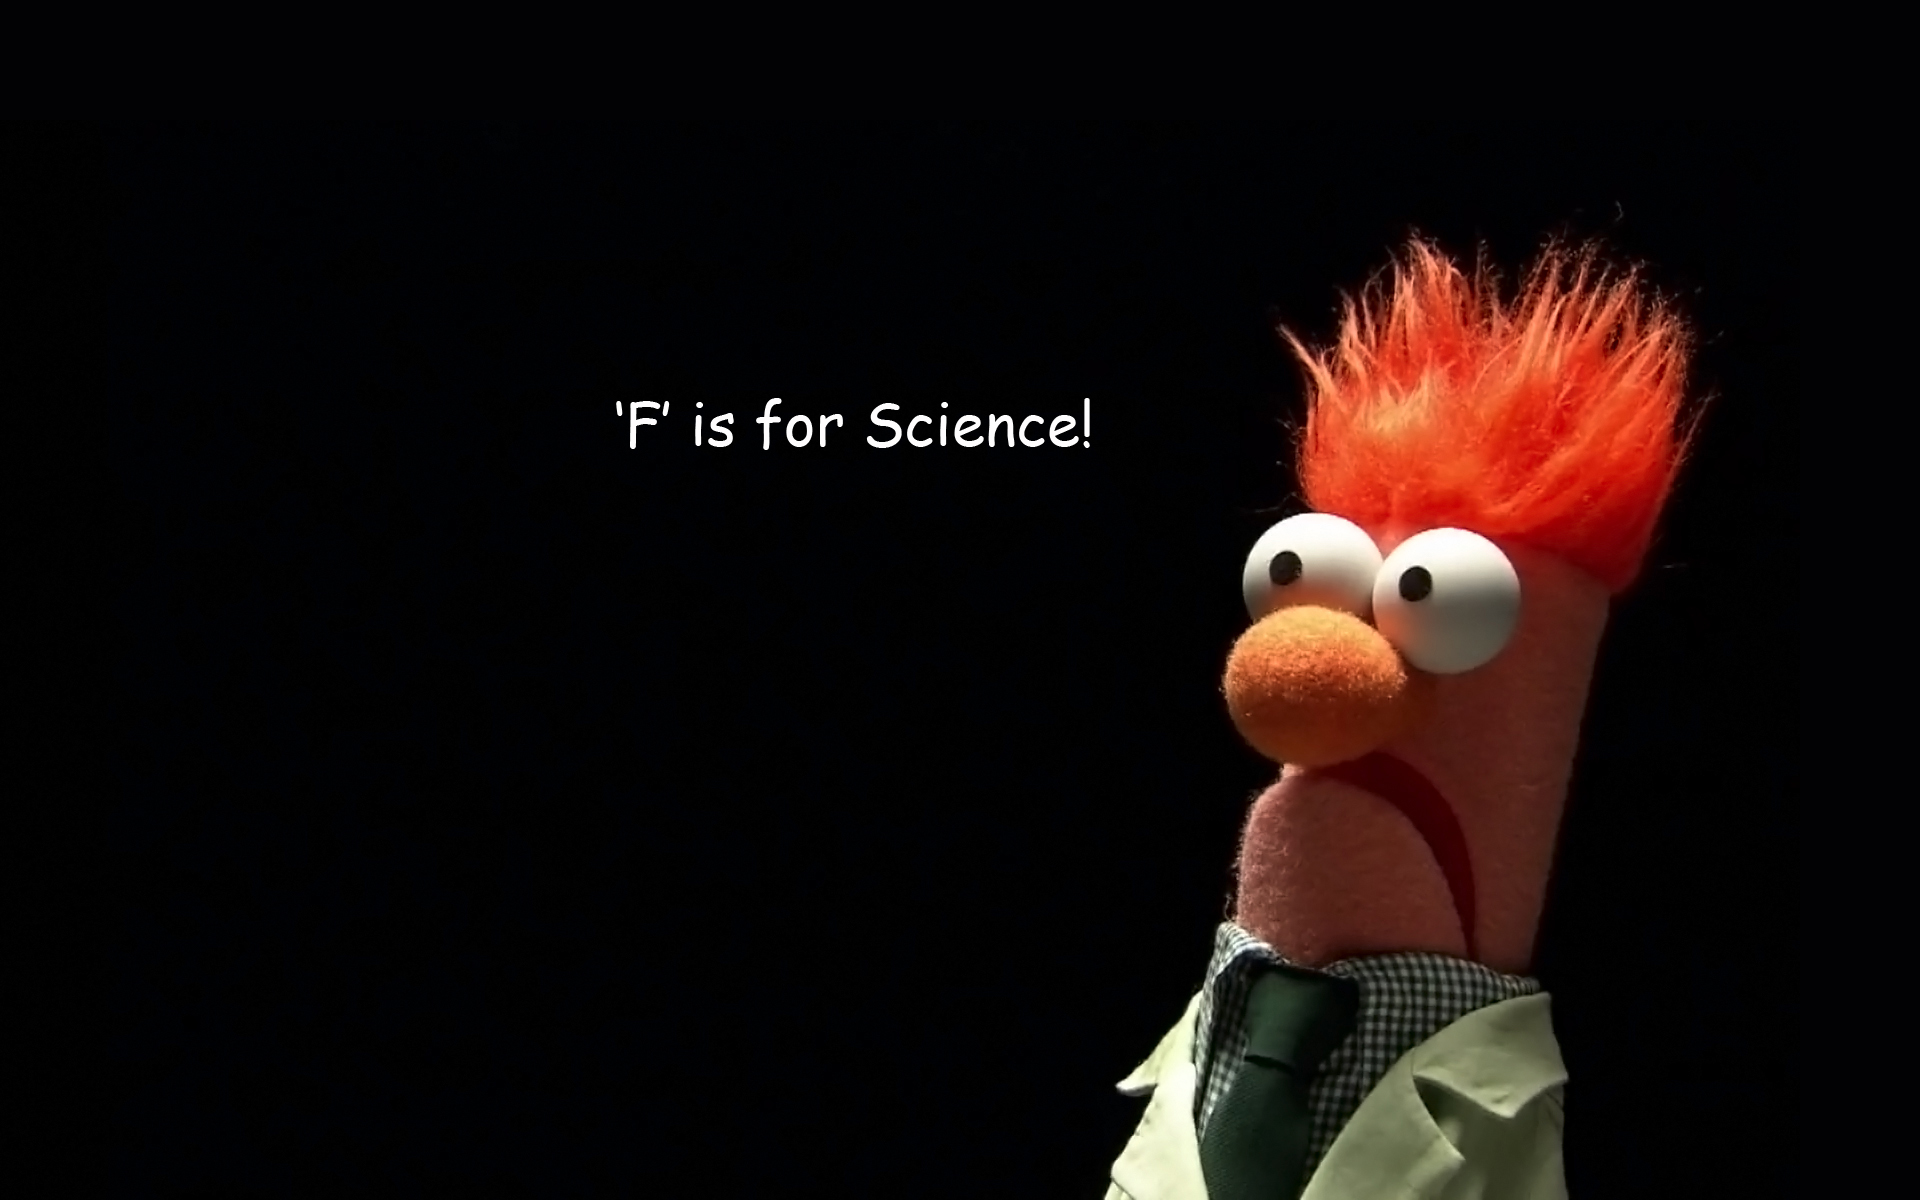 desktop background to help you through F is for Science 1920x1200